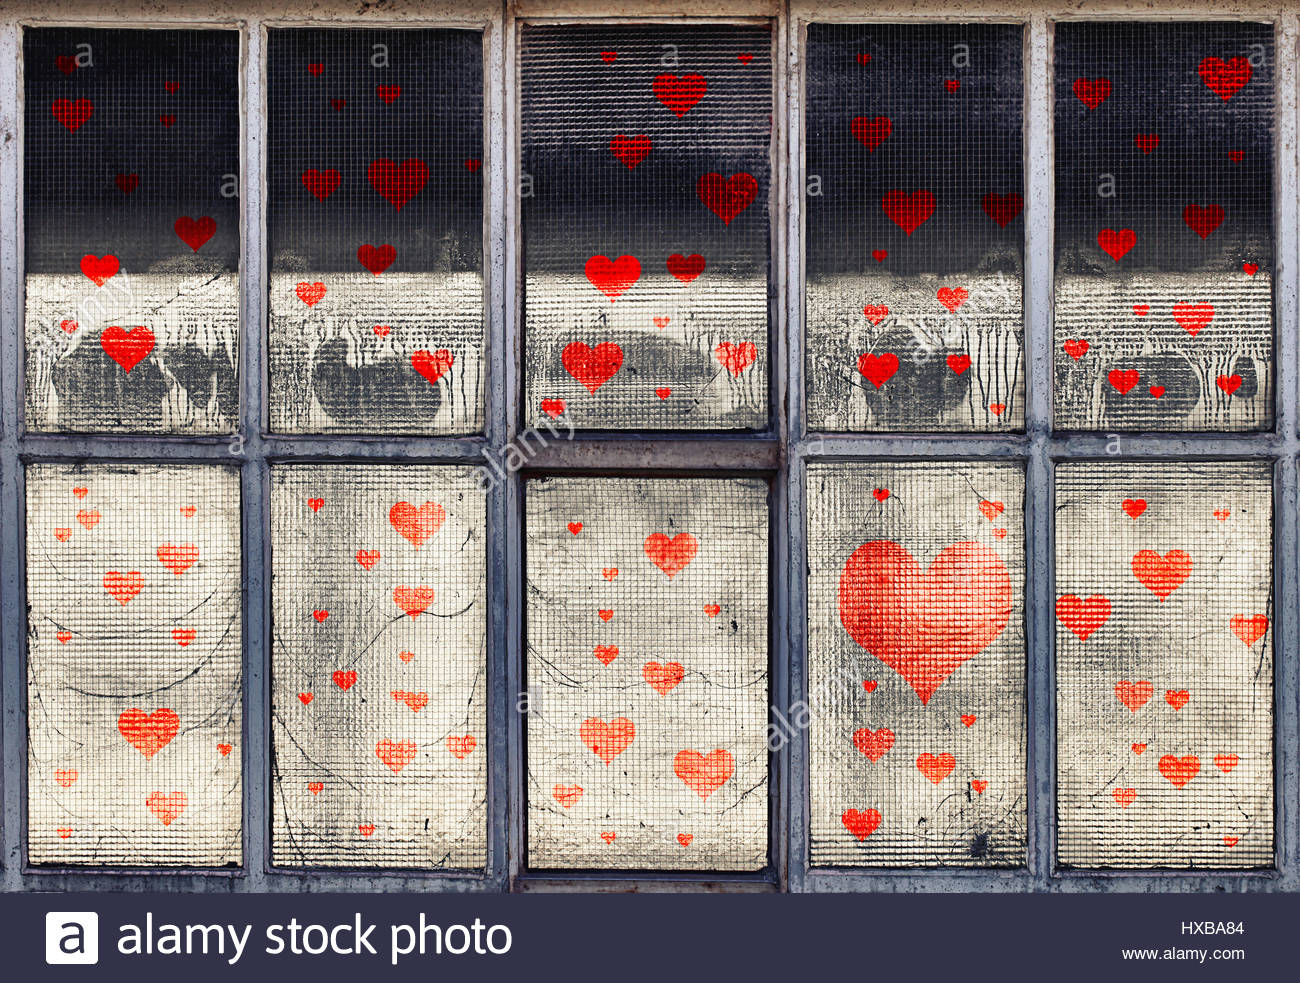 Old broken glass windows with illustrated red hearts symbols stock old broken glass windows with illustrated red hearts symbols biocorpaavc